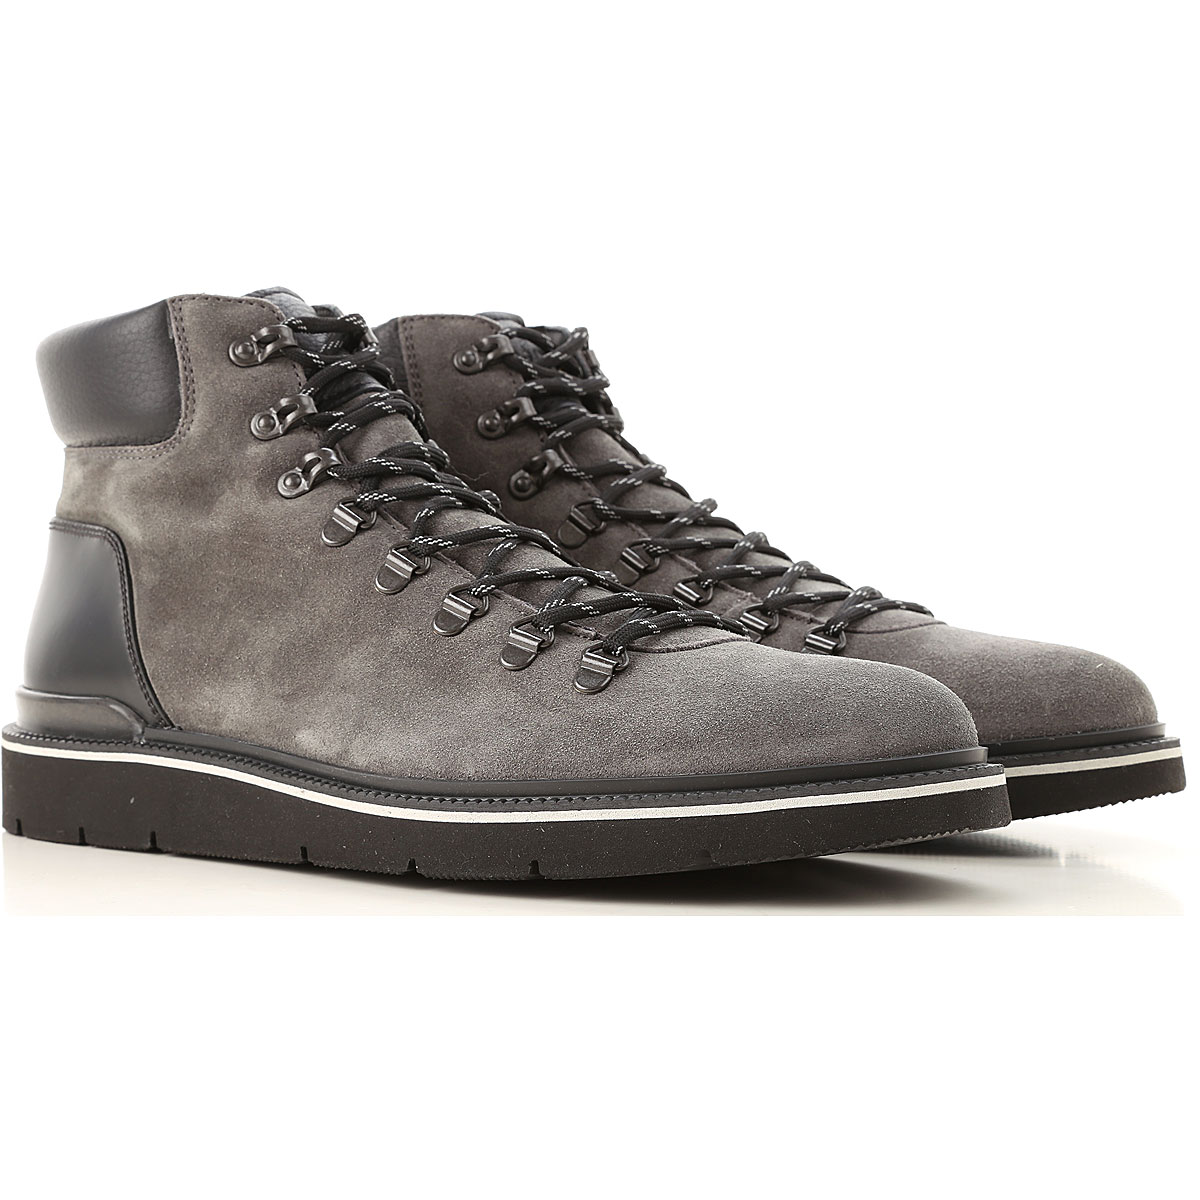 Image of Hogan Boots for Men, Booties, Anthracite Grey, Suede leather, 2017, 10 10.5 11 11.5 12 6 7 7.5 8 8.5 9 9.5